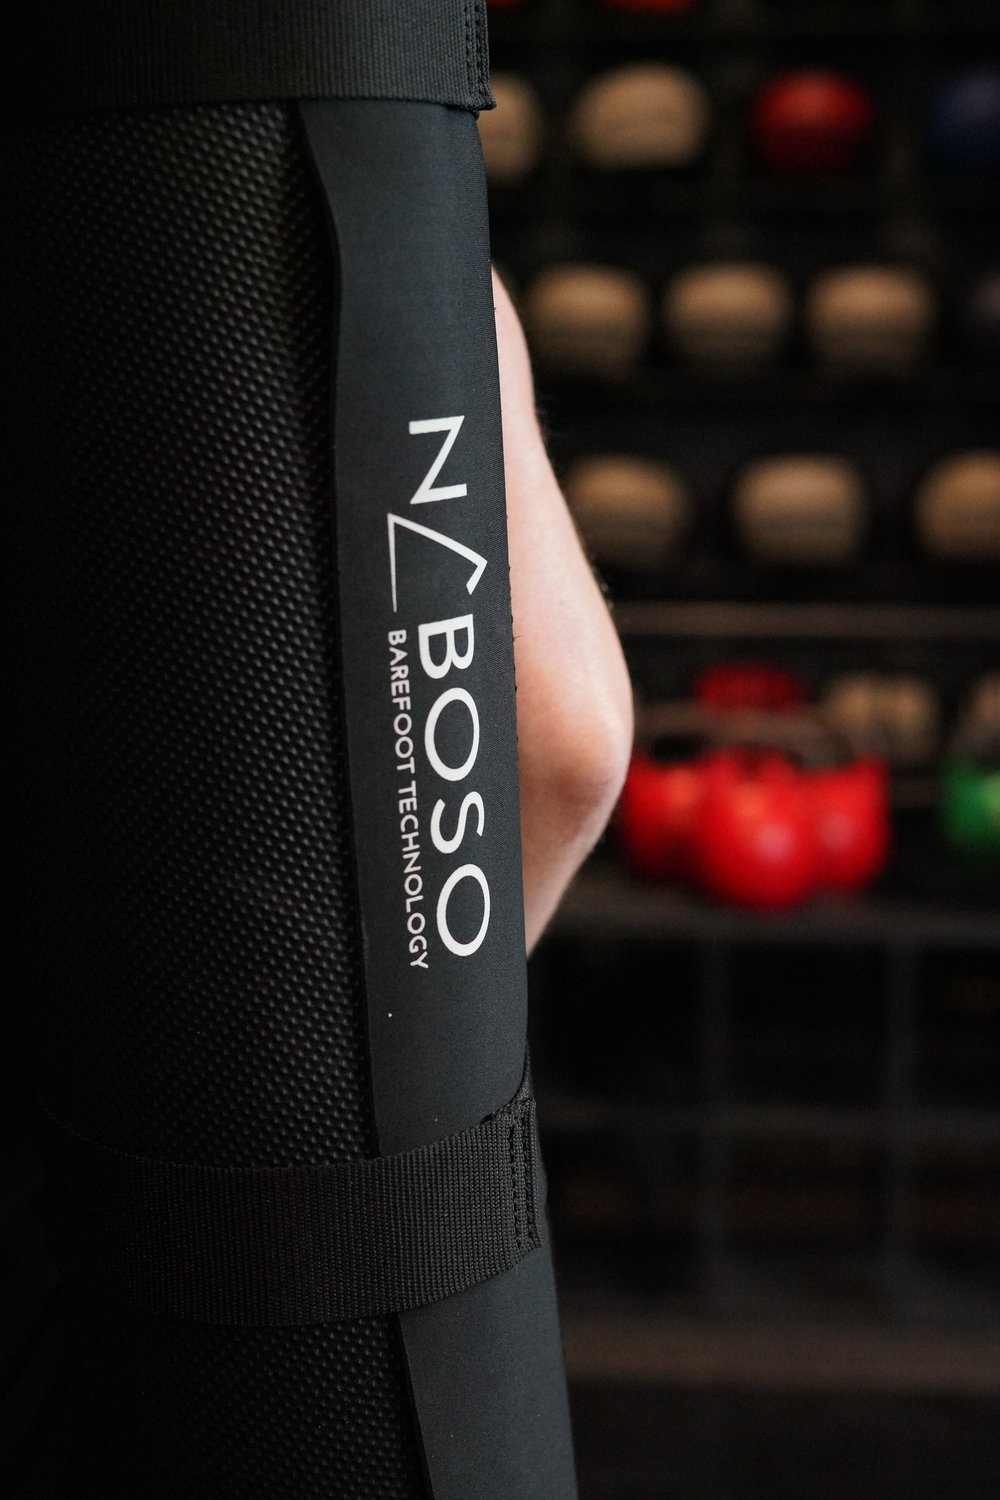 Introducing Naboso™ Technology Training Mats - The first-ever barefoot training mat specifically designed to stimulate the small nerve proprioceptors in the bottom of the feet and palms of the hands. From fitness to rehab and performance the Naboso™ Training Mat is the ideal way to stay grounded and connected through the feet during all movements and exercises.